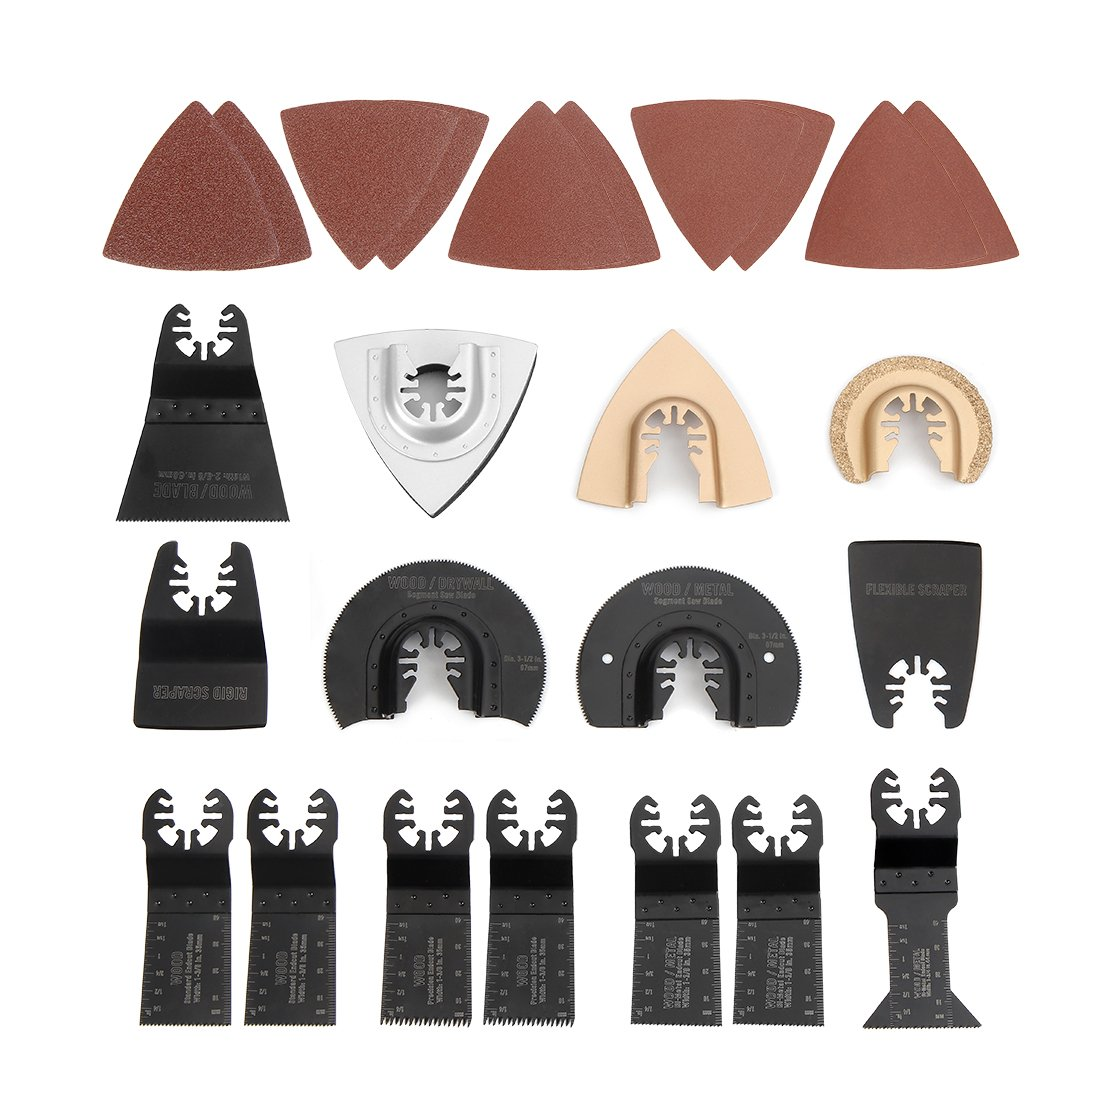 WORKPRO 25-piece Oscillating Multitool Accessories Saw Blades Quick Release Kit Packed by Cardboard Box